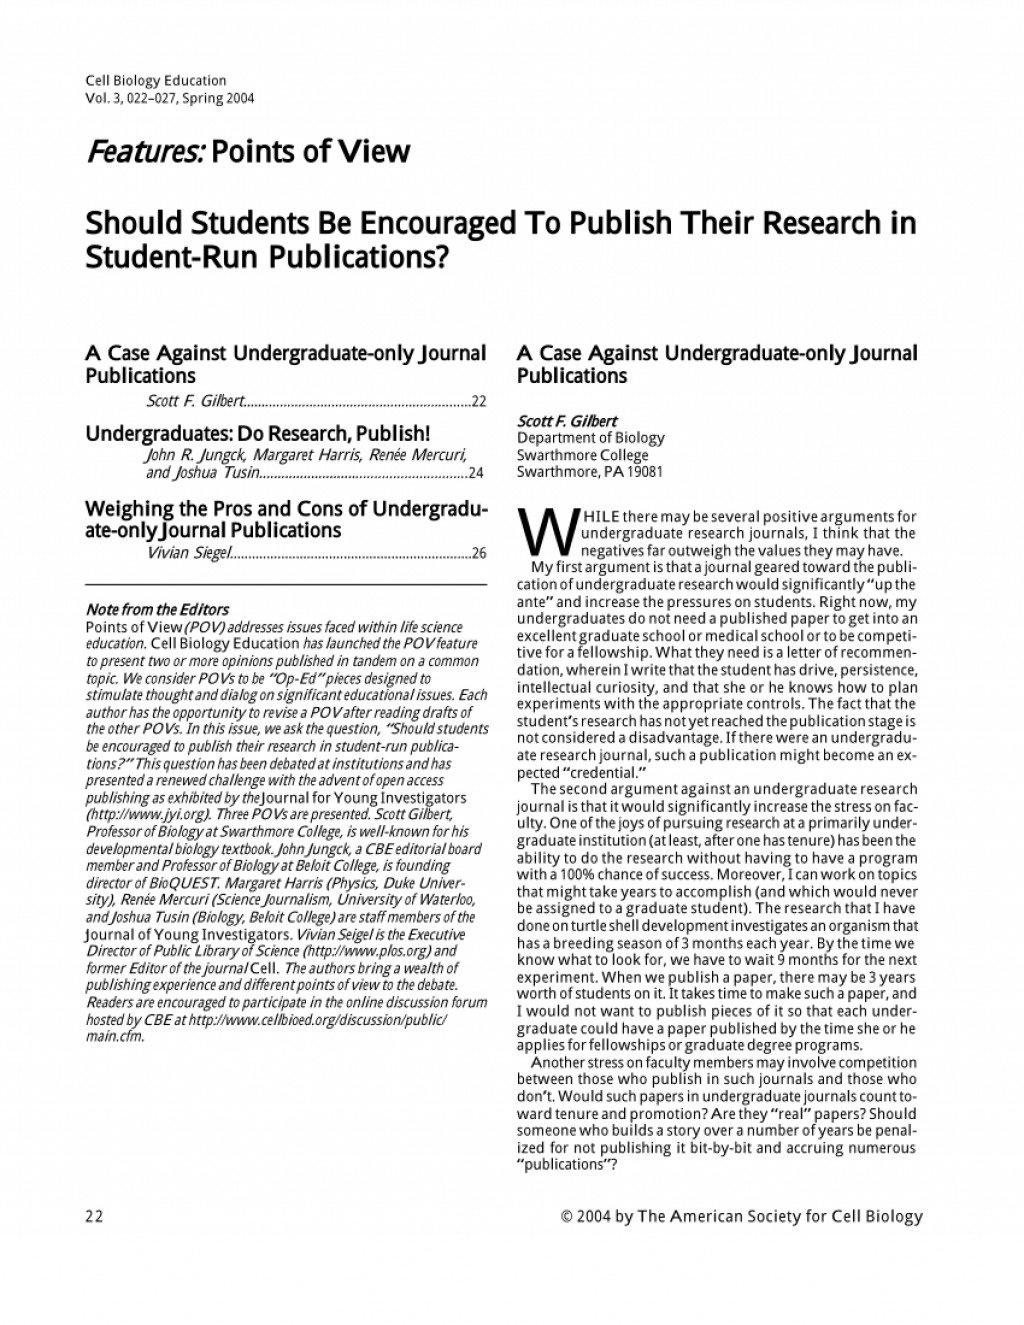 003 How To Publish Research Paper As An Undergraduate Marvelous A In India Large